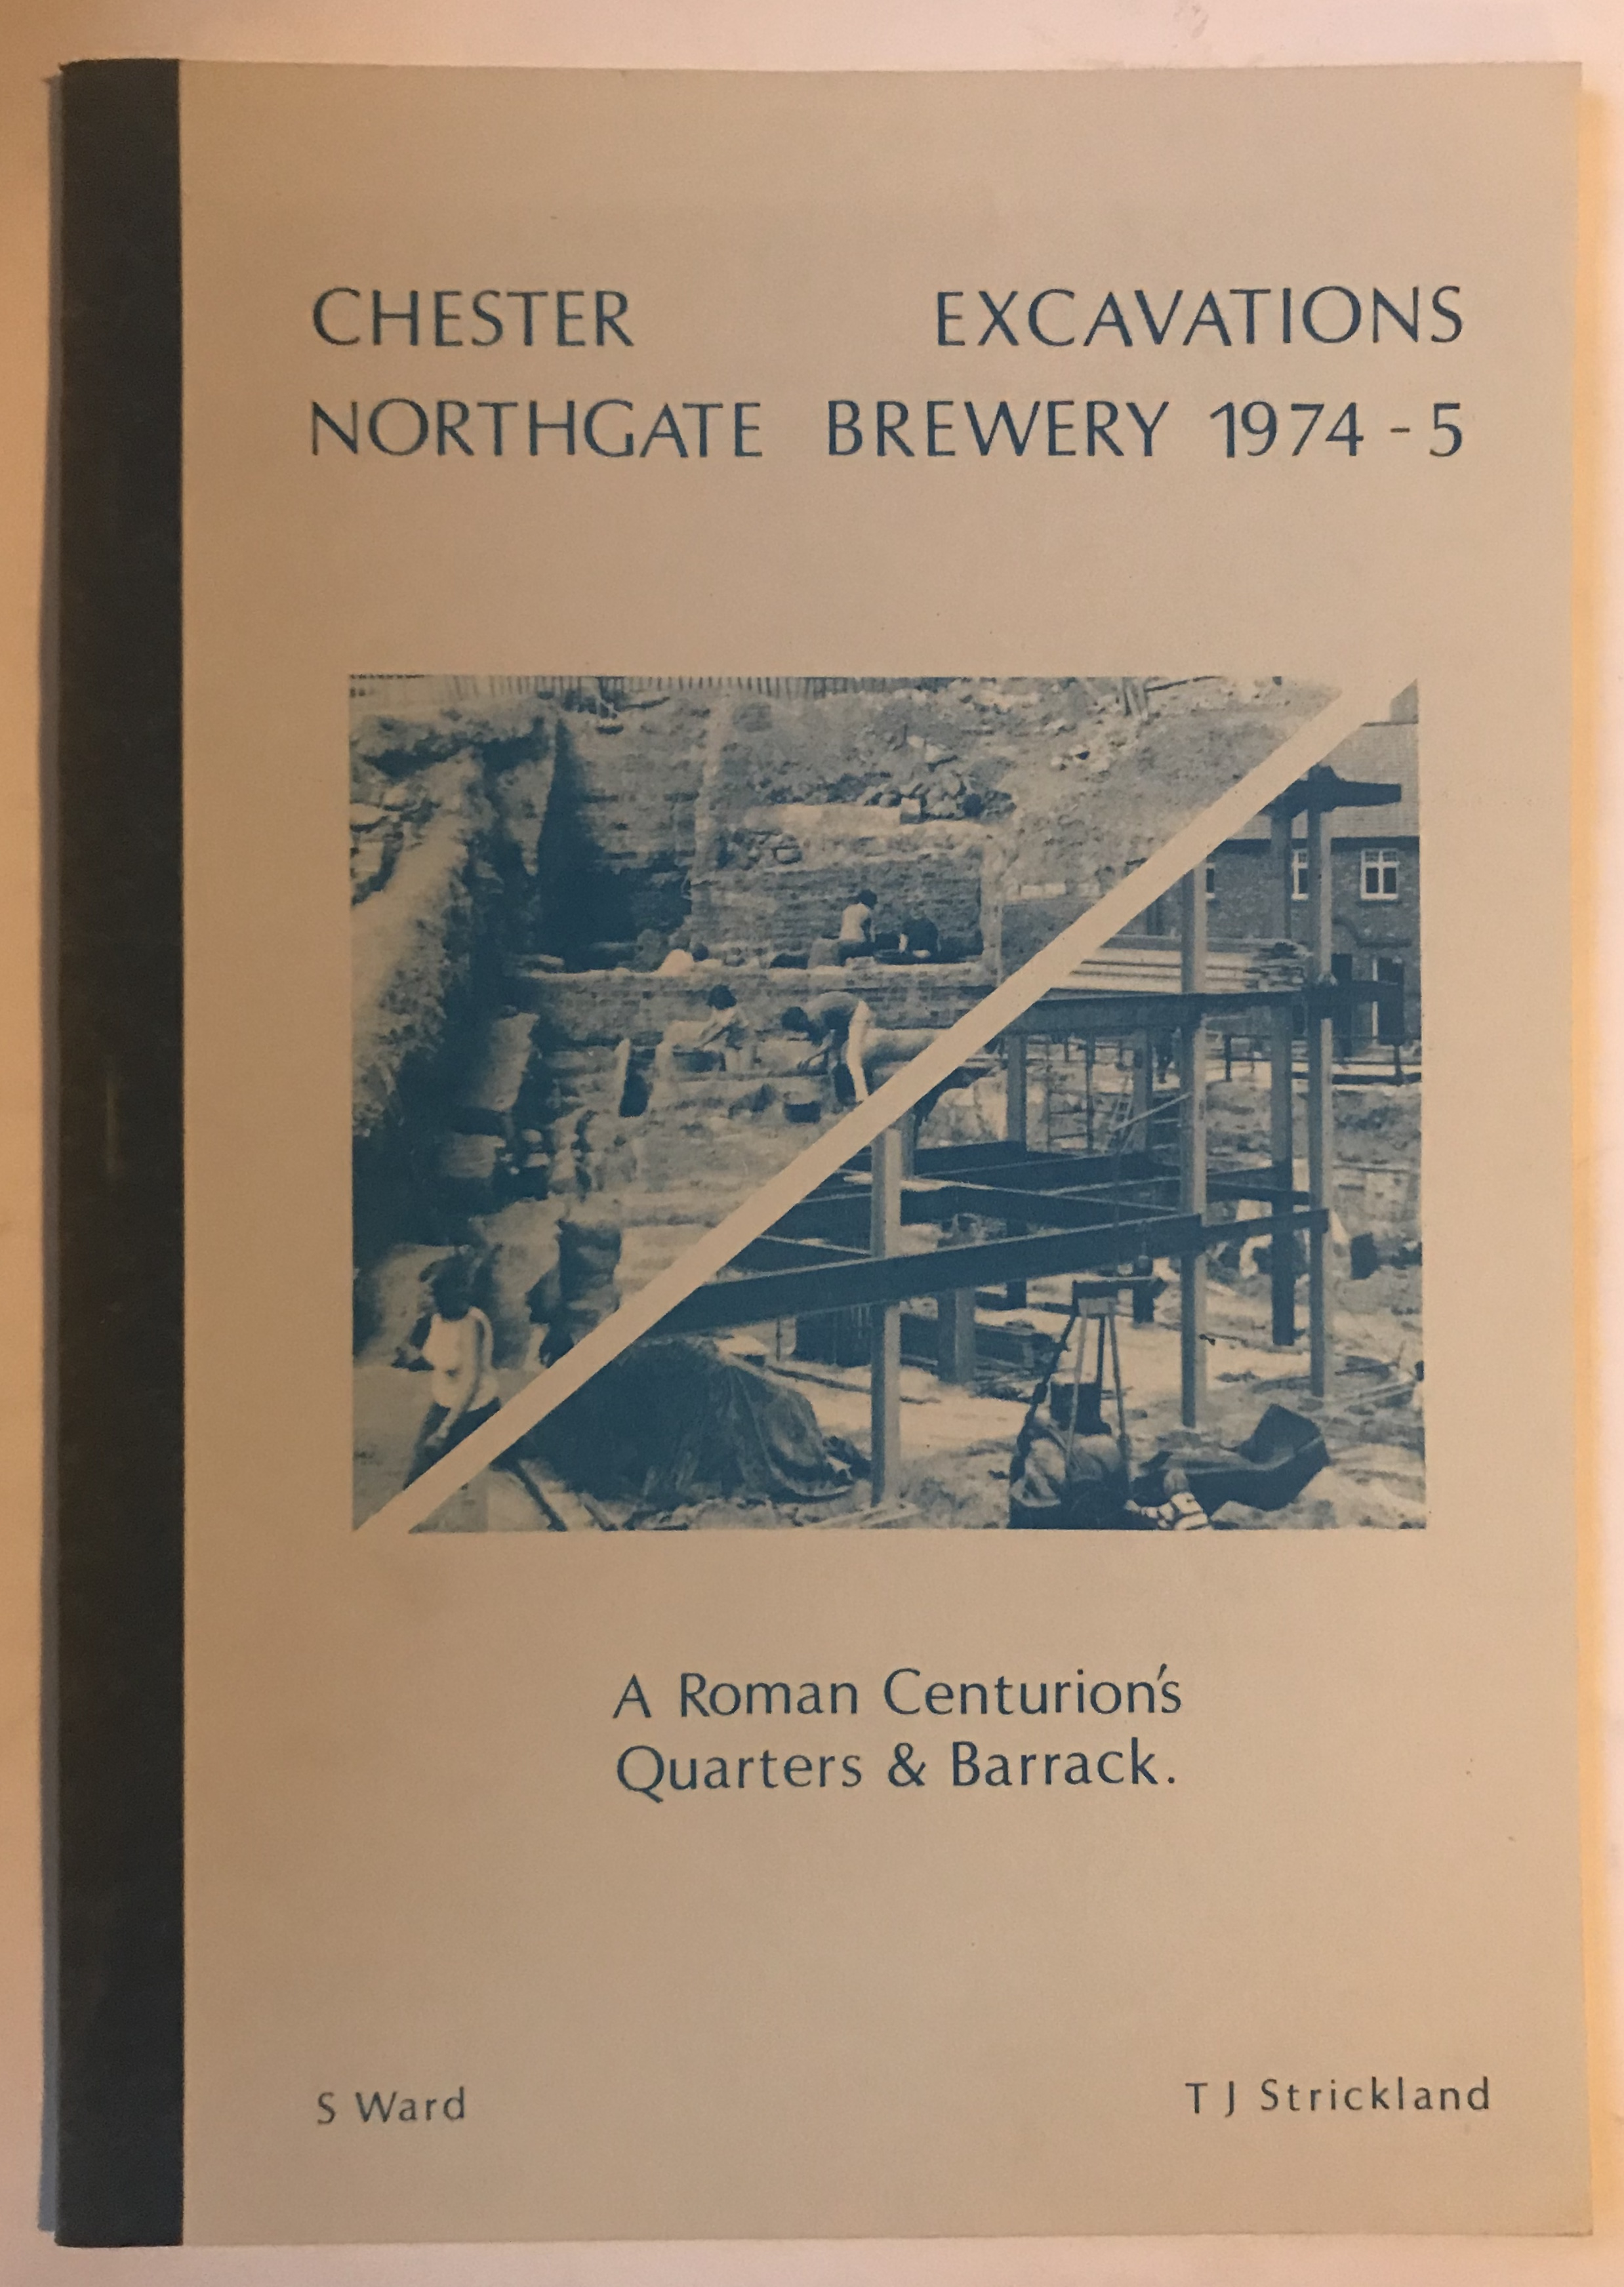 Image for Excavations on the Site of the Northgate Brewery Chester 1974-5 :A Roman's Centurion's quarters and barrack